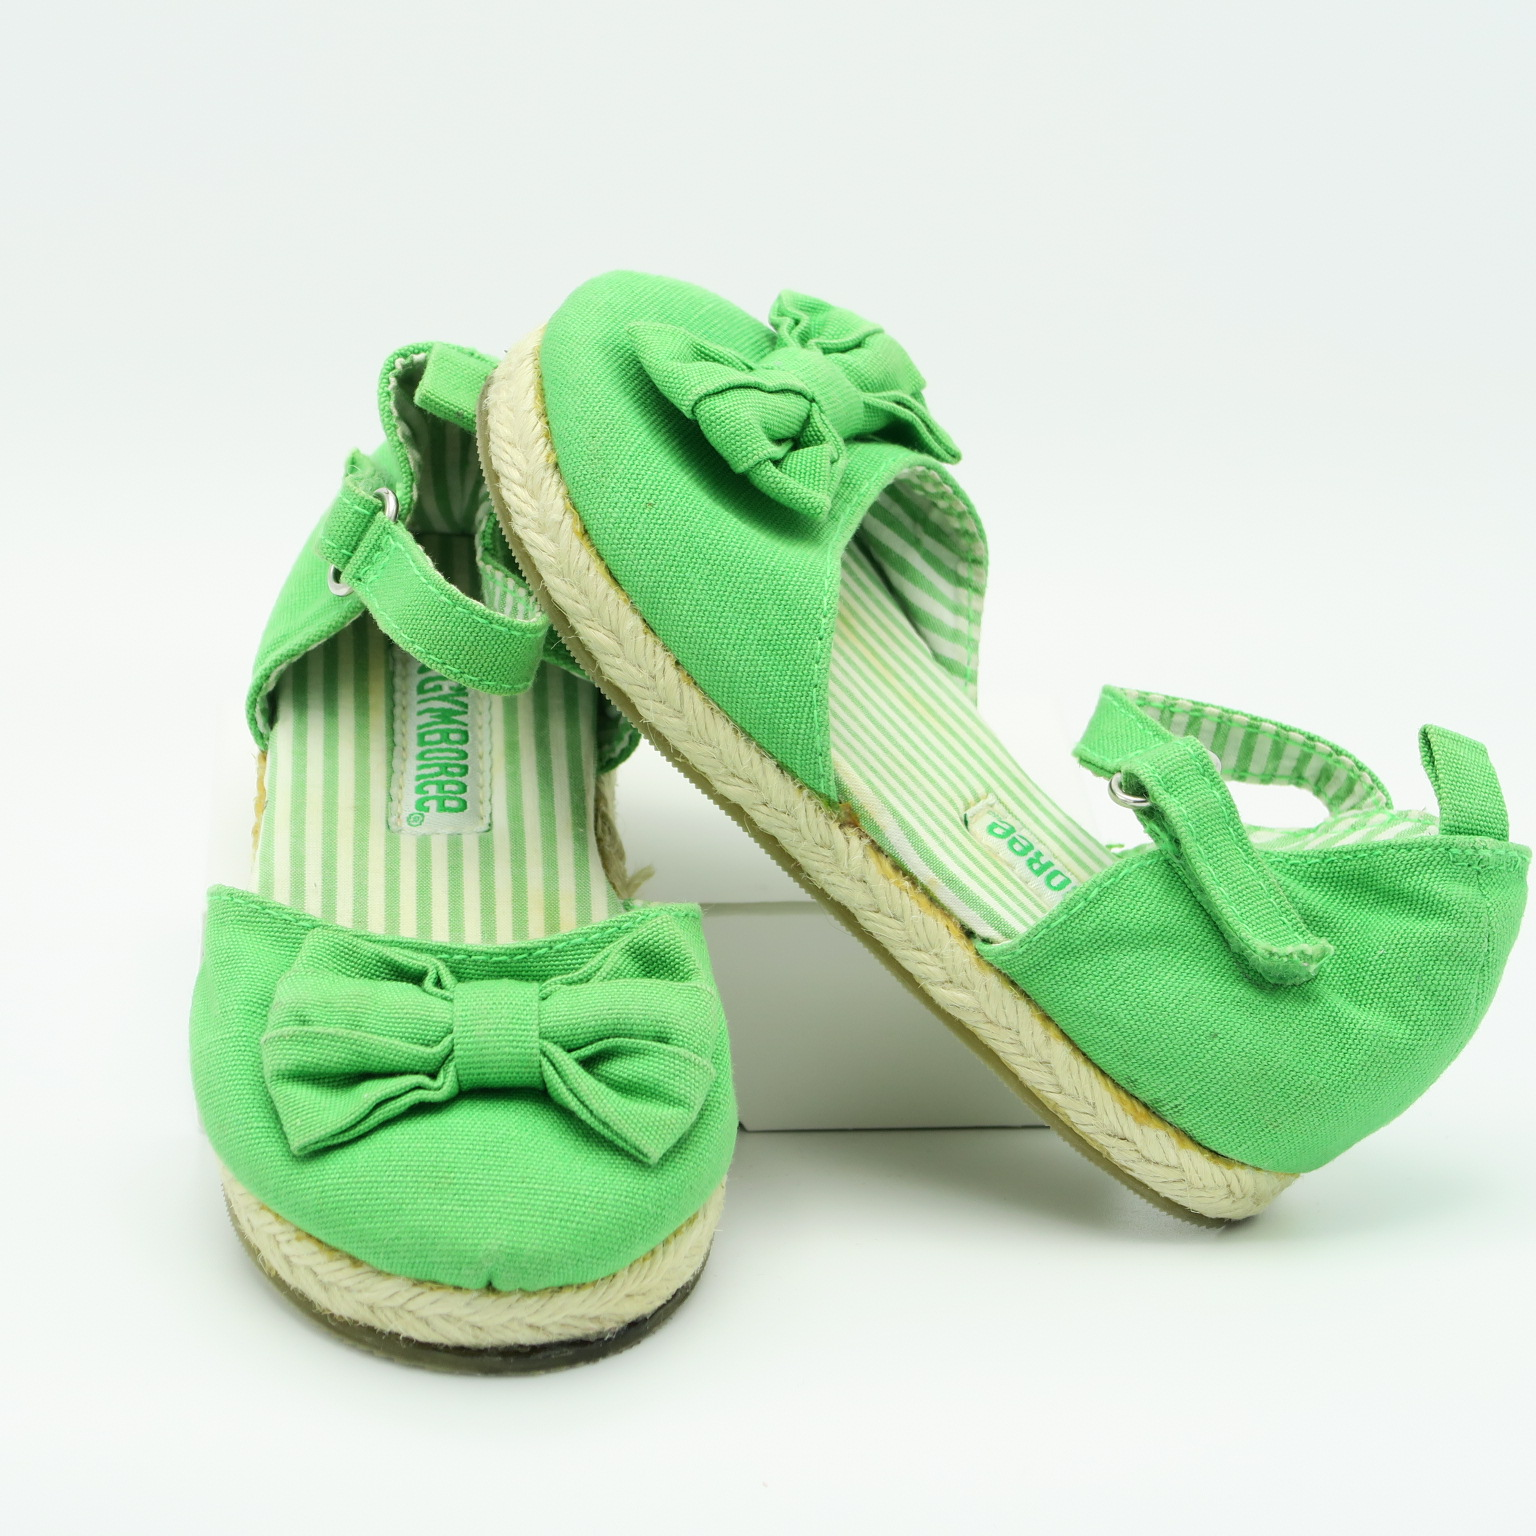 7b84216faf Water Shoes size: 6 Toddler - The Swoondle Society